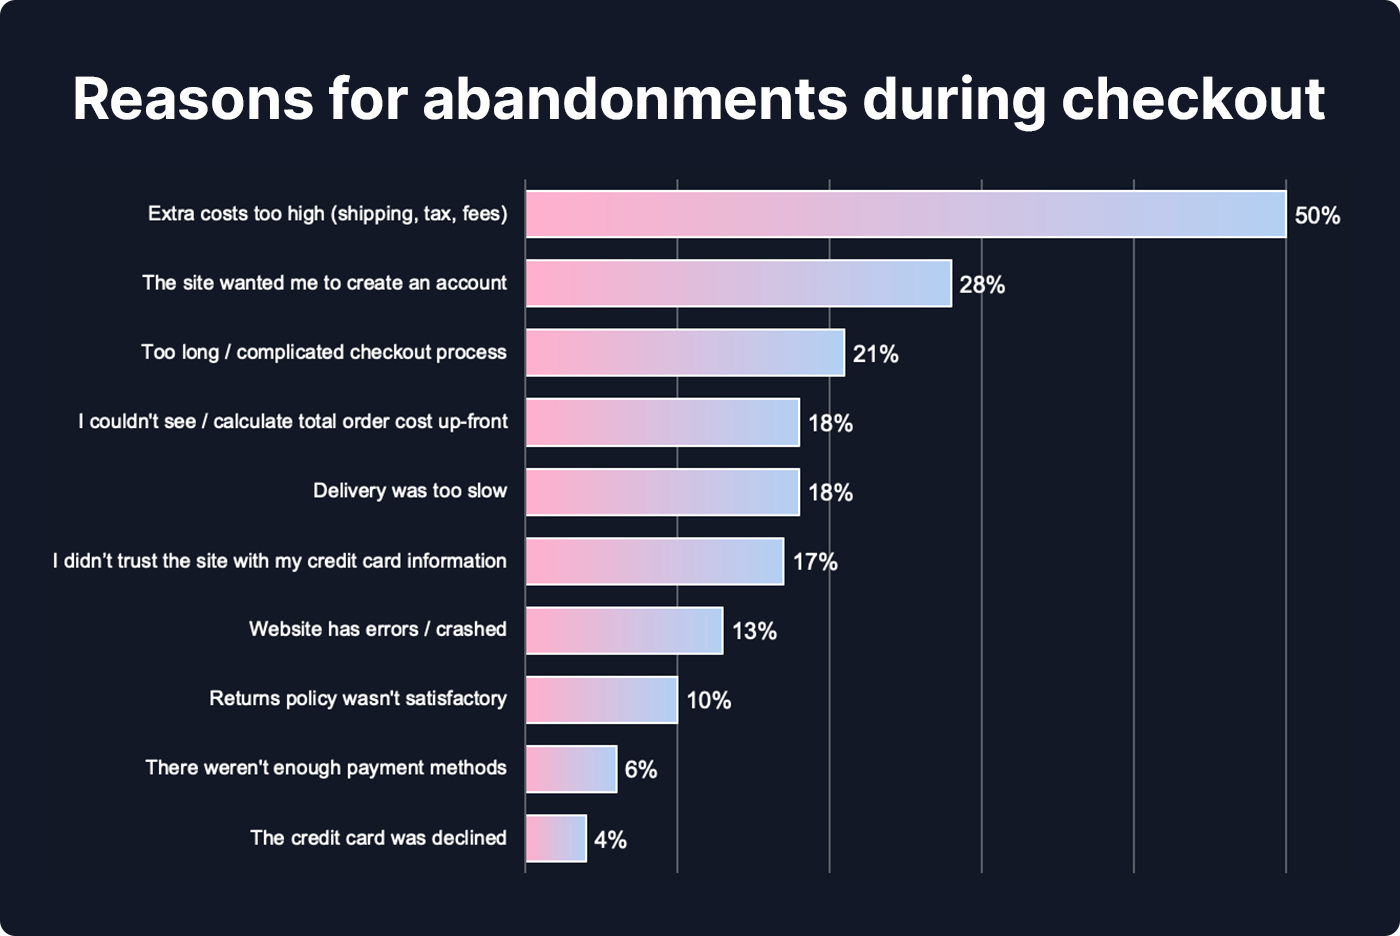 Chart showing the reasons for abandonments during the checkout process